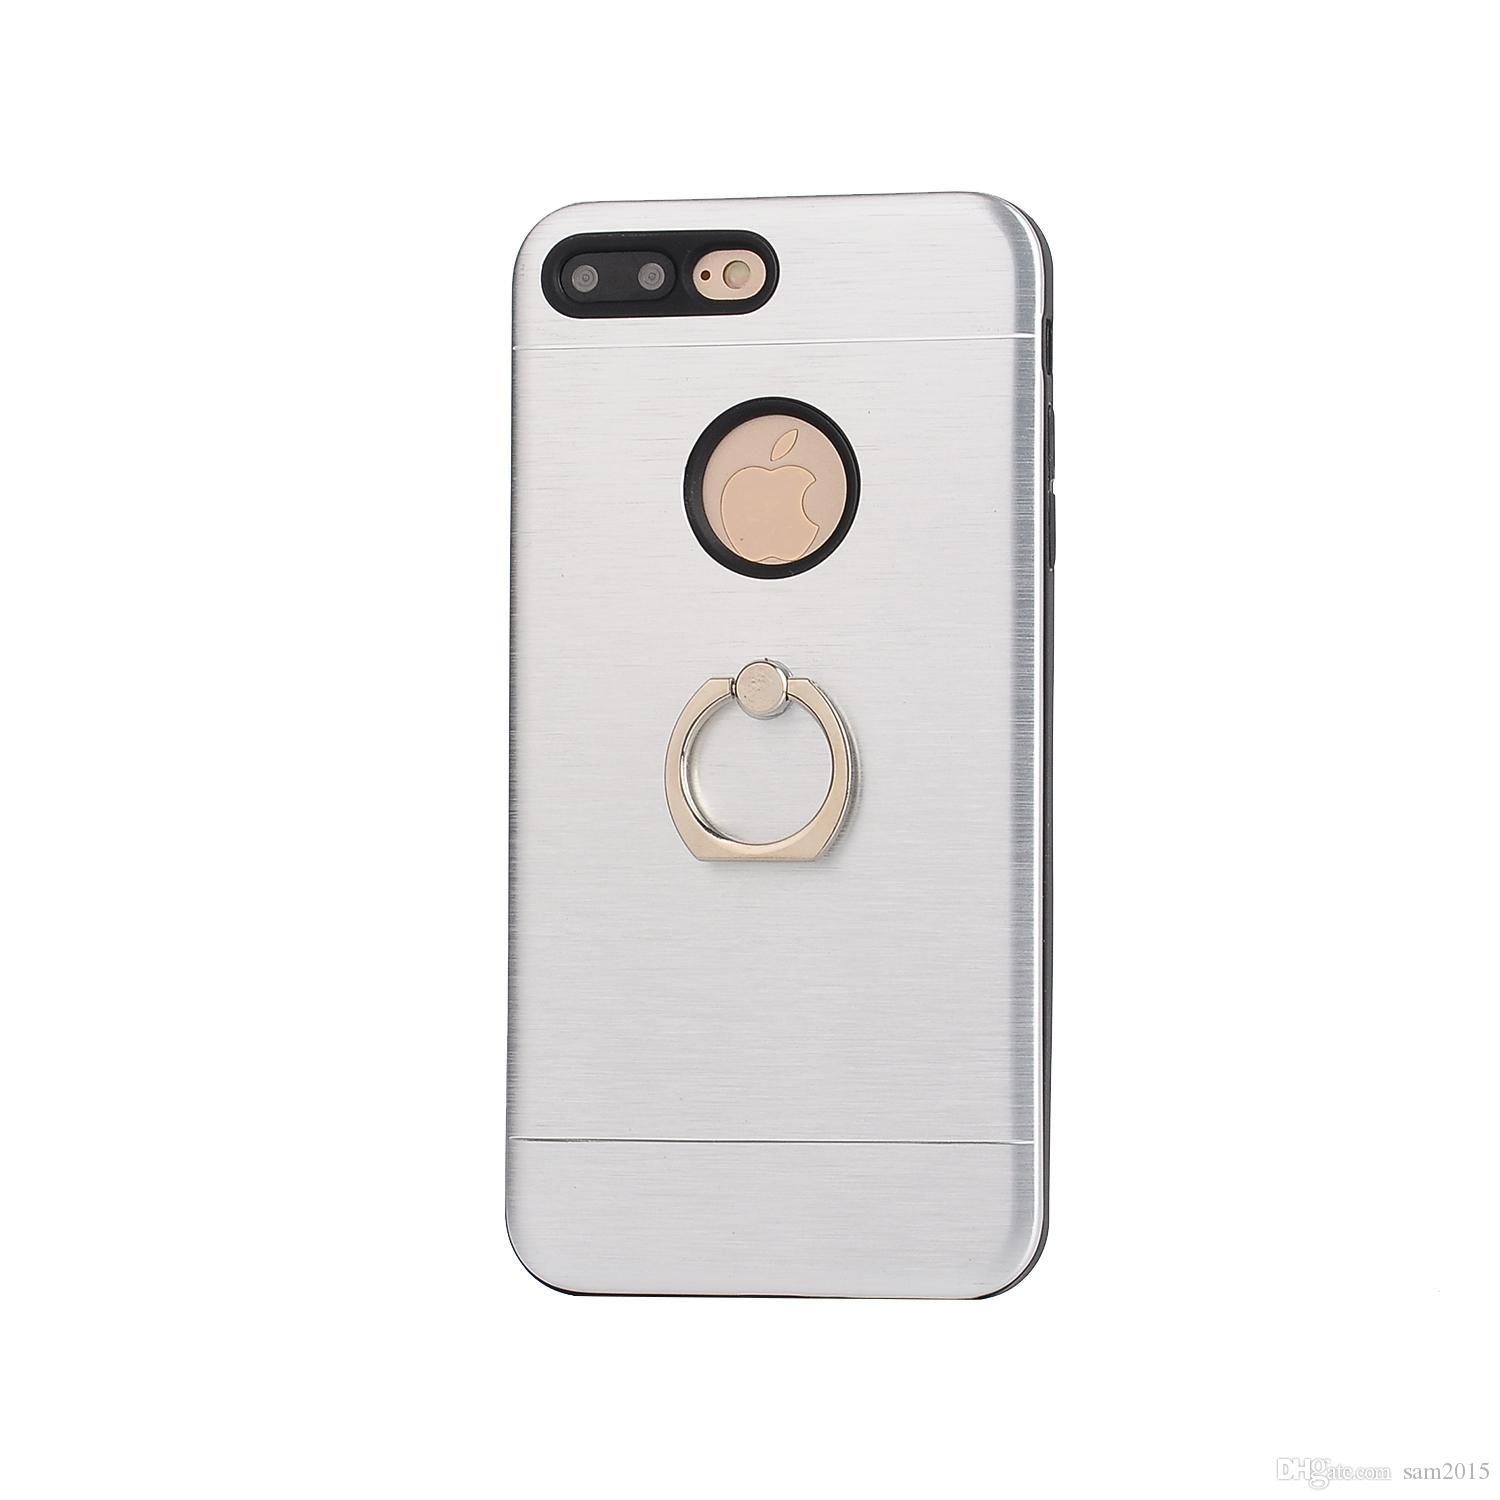 Phone Cases Luxury Aluminum Metal Ring+tpu Holder Stand Back Cover Case Customized Hot Sale Products for iphone 5 6 7 plus samsung s6 s7edg